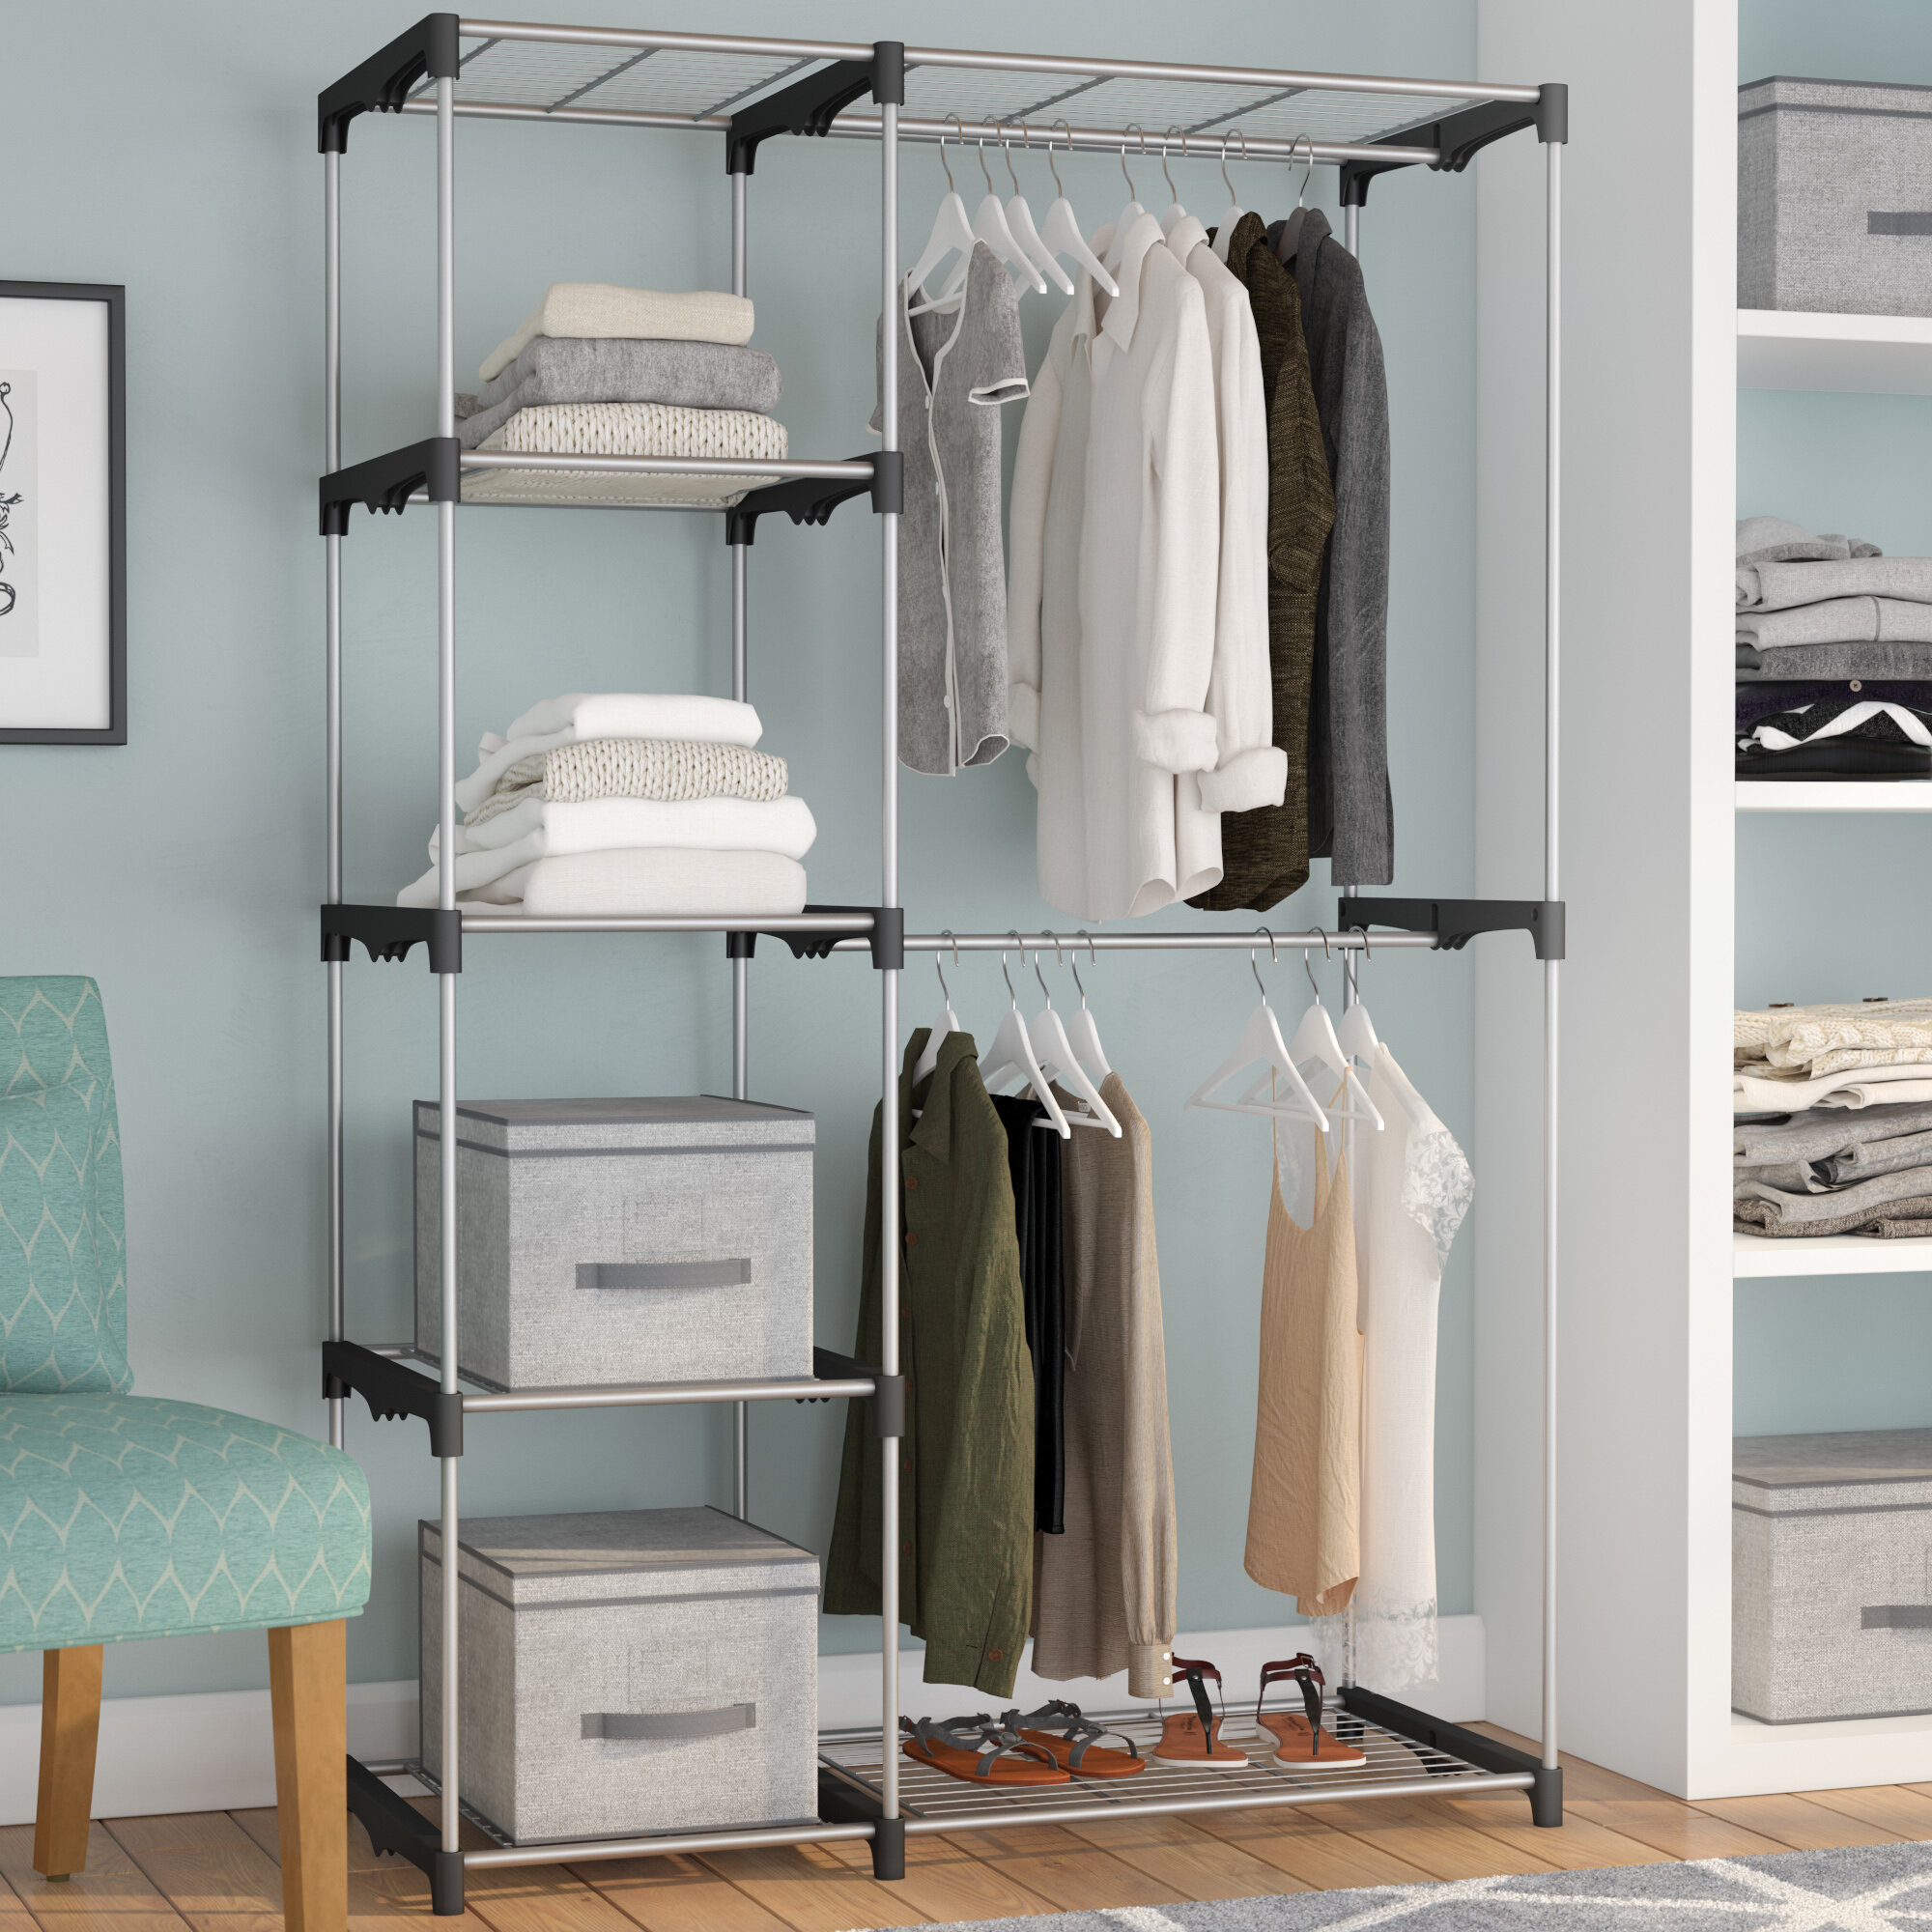 wardrobe system closet target s free organizers plans standing storage rod solutions freestanding